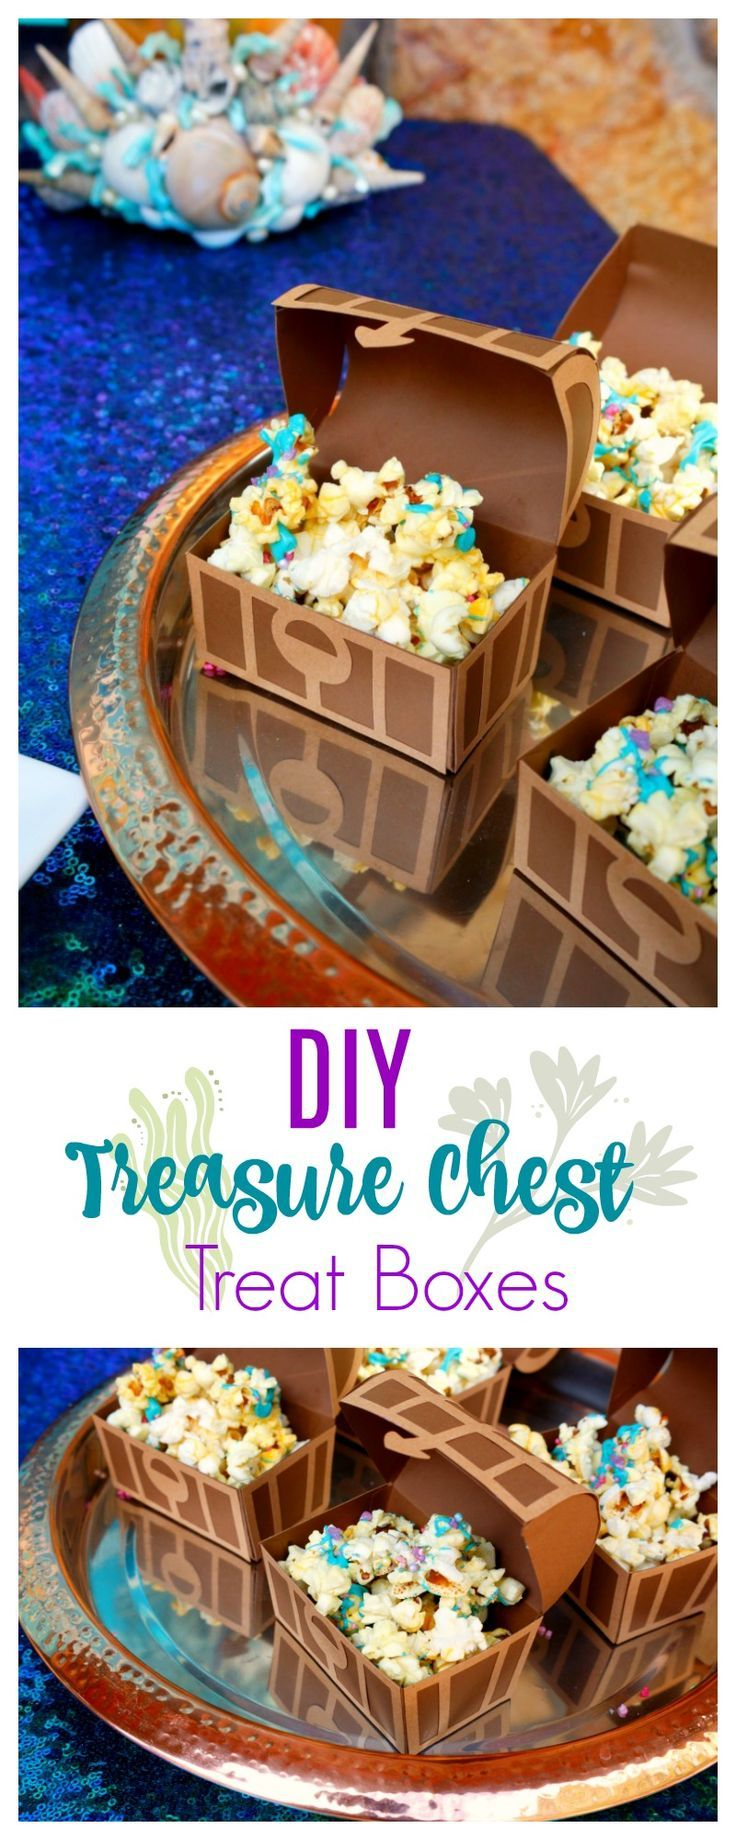 Here's an easy to follow tutorial for making these treasure chest treat boxes - they make excellent party favors for your Under the Sea, Mermaid, or Pirate party.